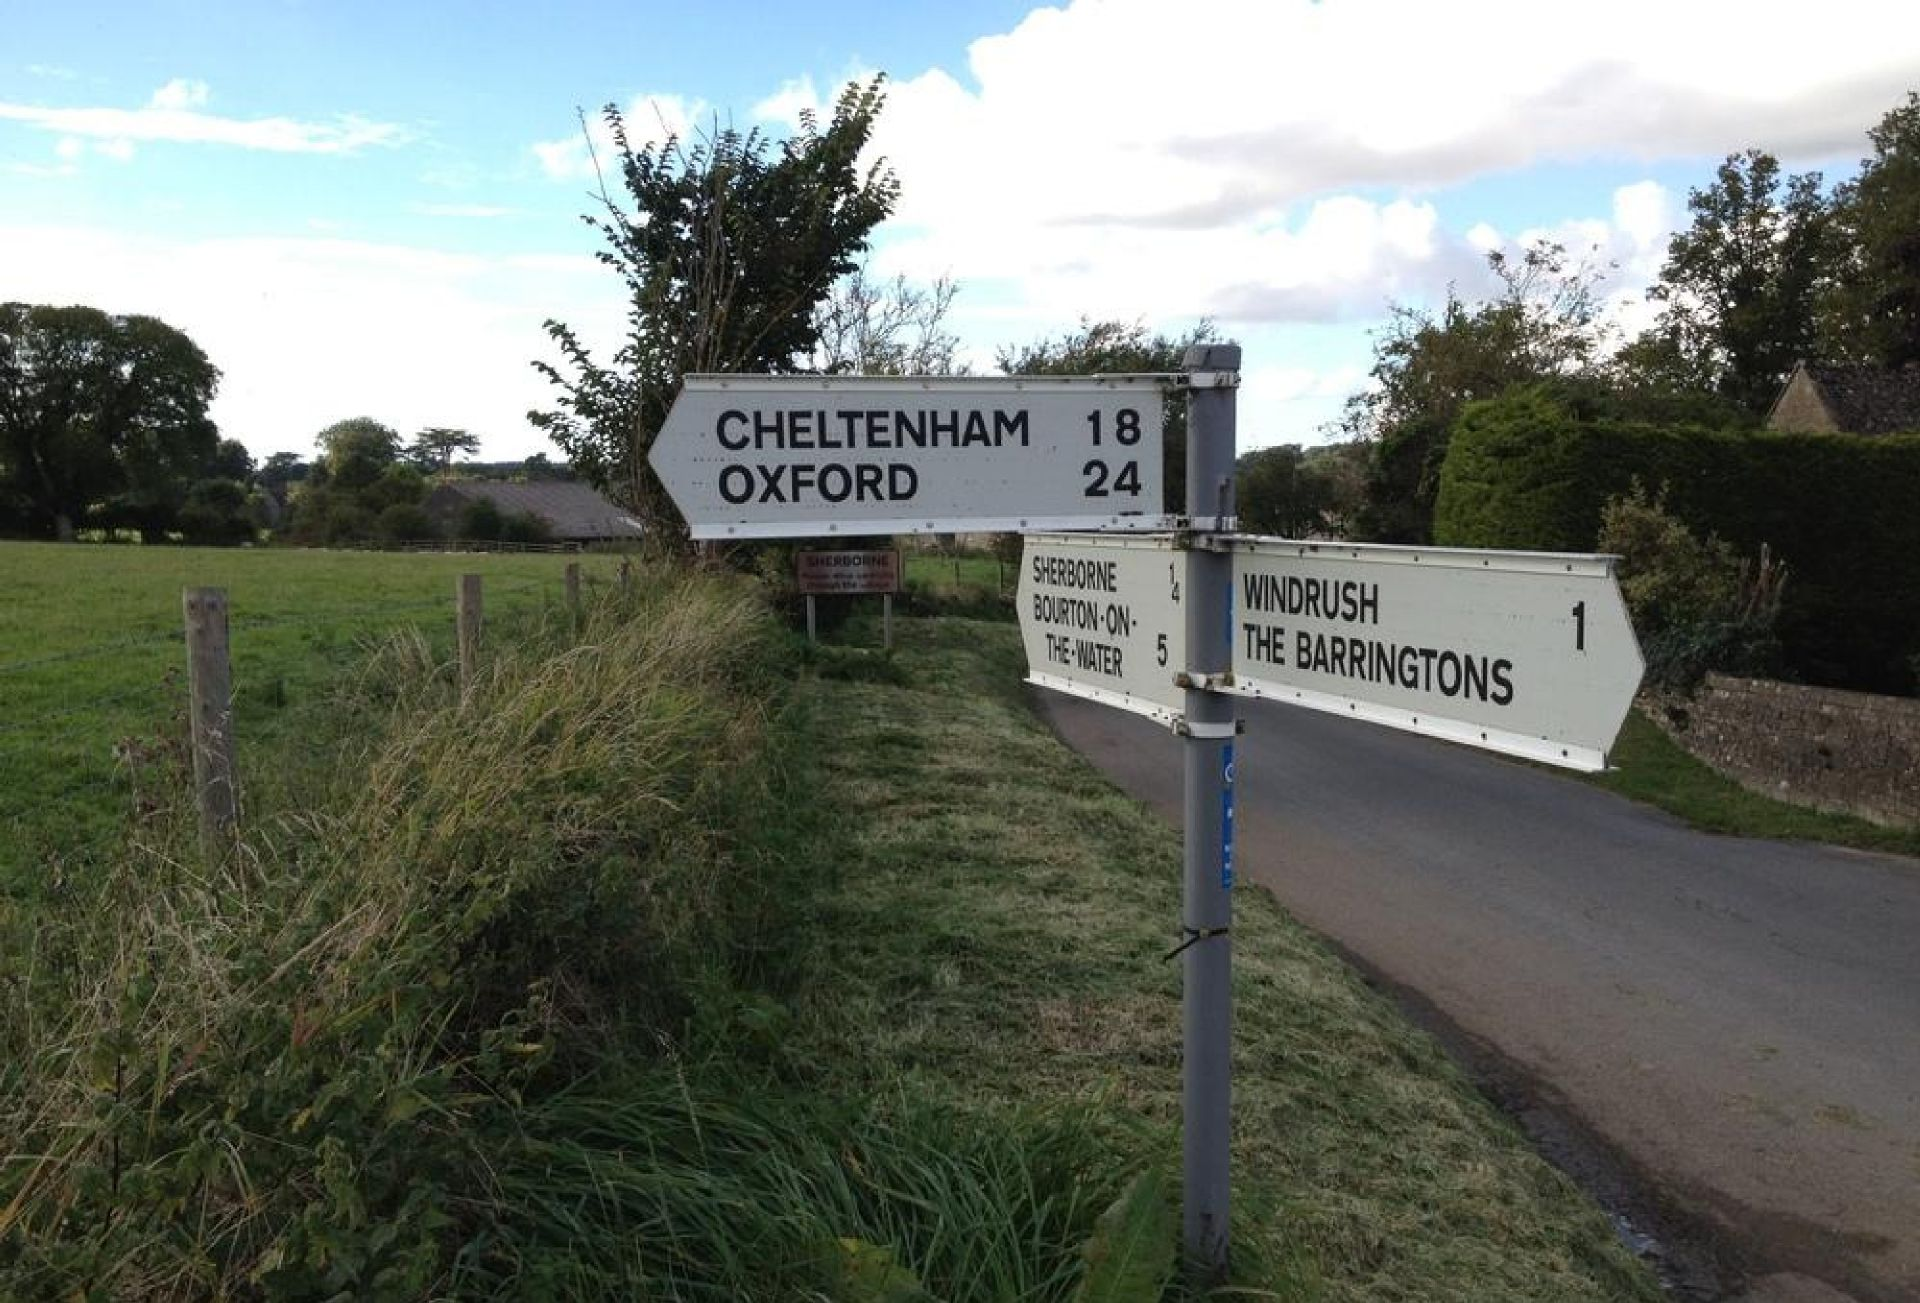 Oxford and Cheltenham are approximately 20 miles away